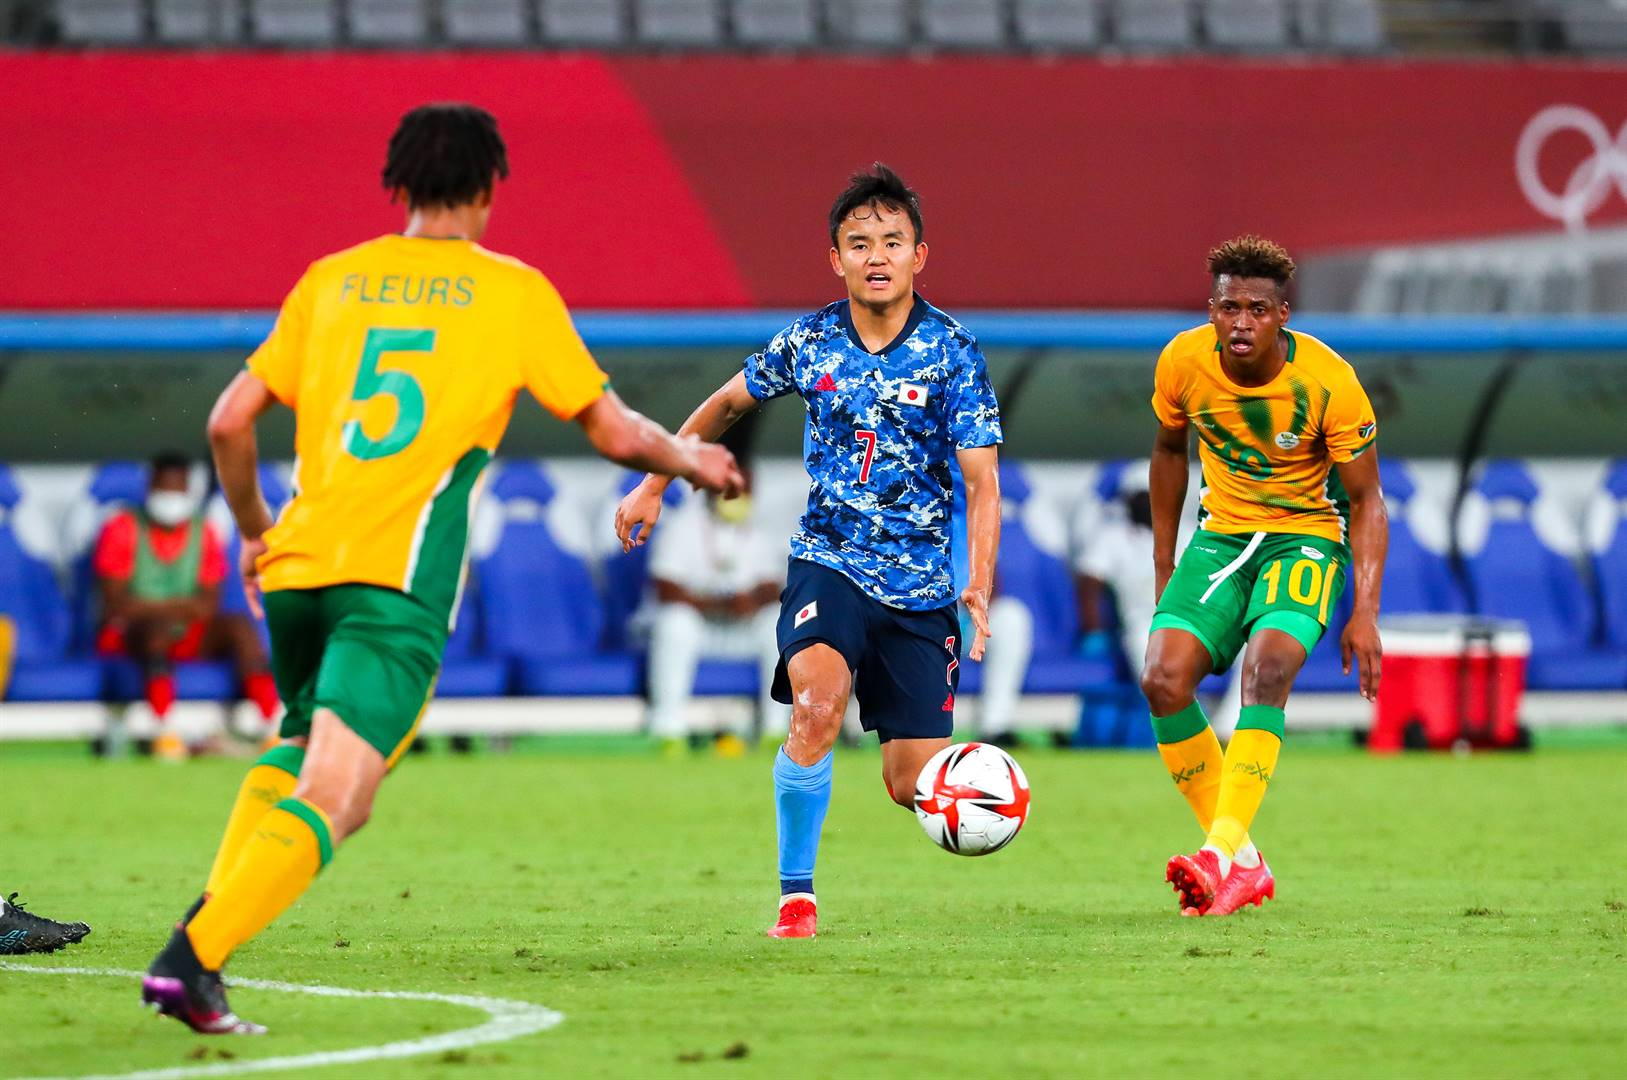 Japanese striker Takefusa Kubo scored the goal that sunk South Africa in their opening game of the Olympics on Thursday. Photo: Roger Sedres/Gallo Images